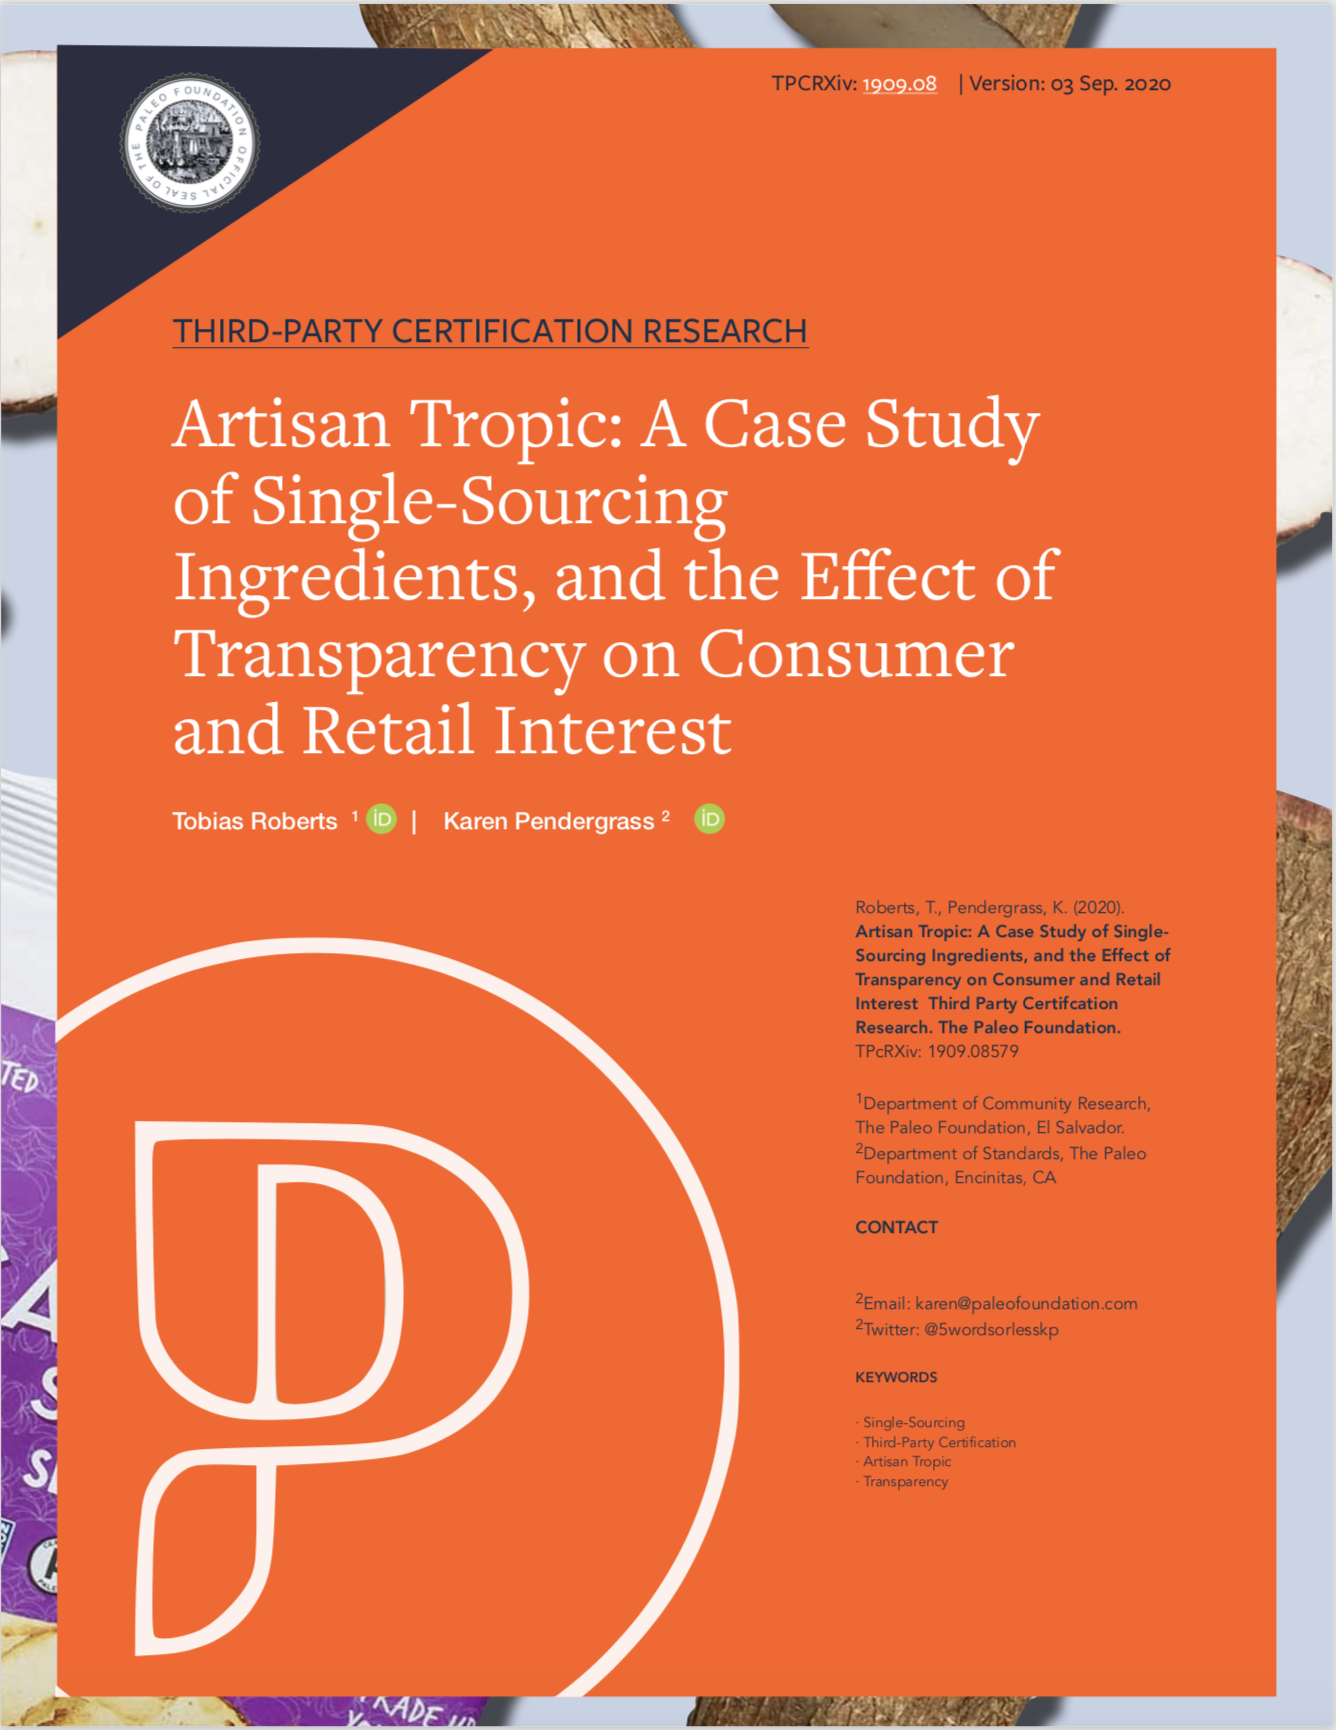 Artisan Tropic A Case Study of The Effect of Transparency on Retail Interest